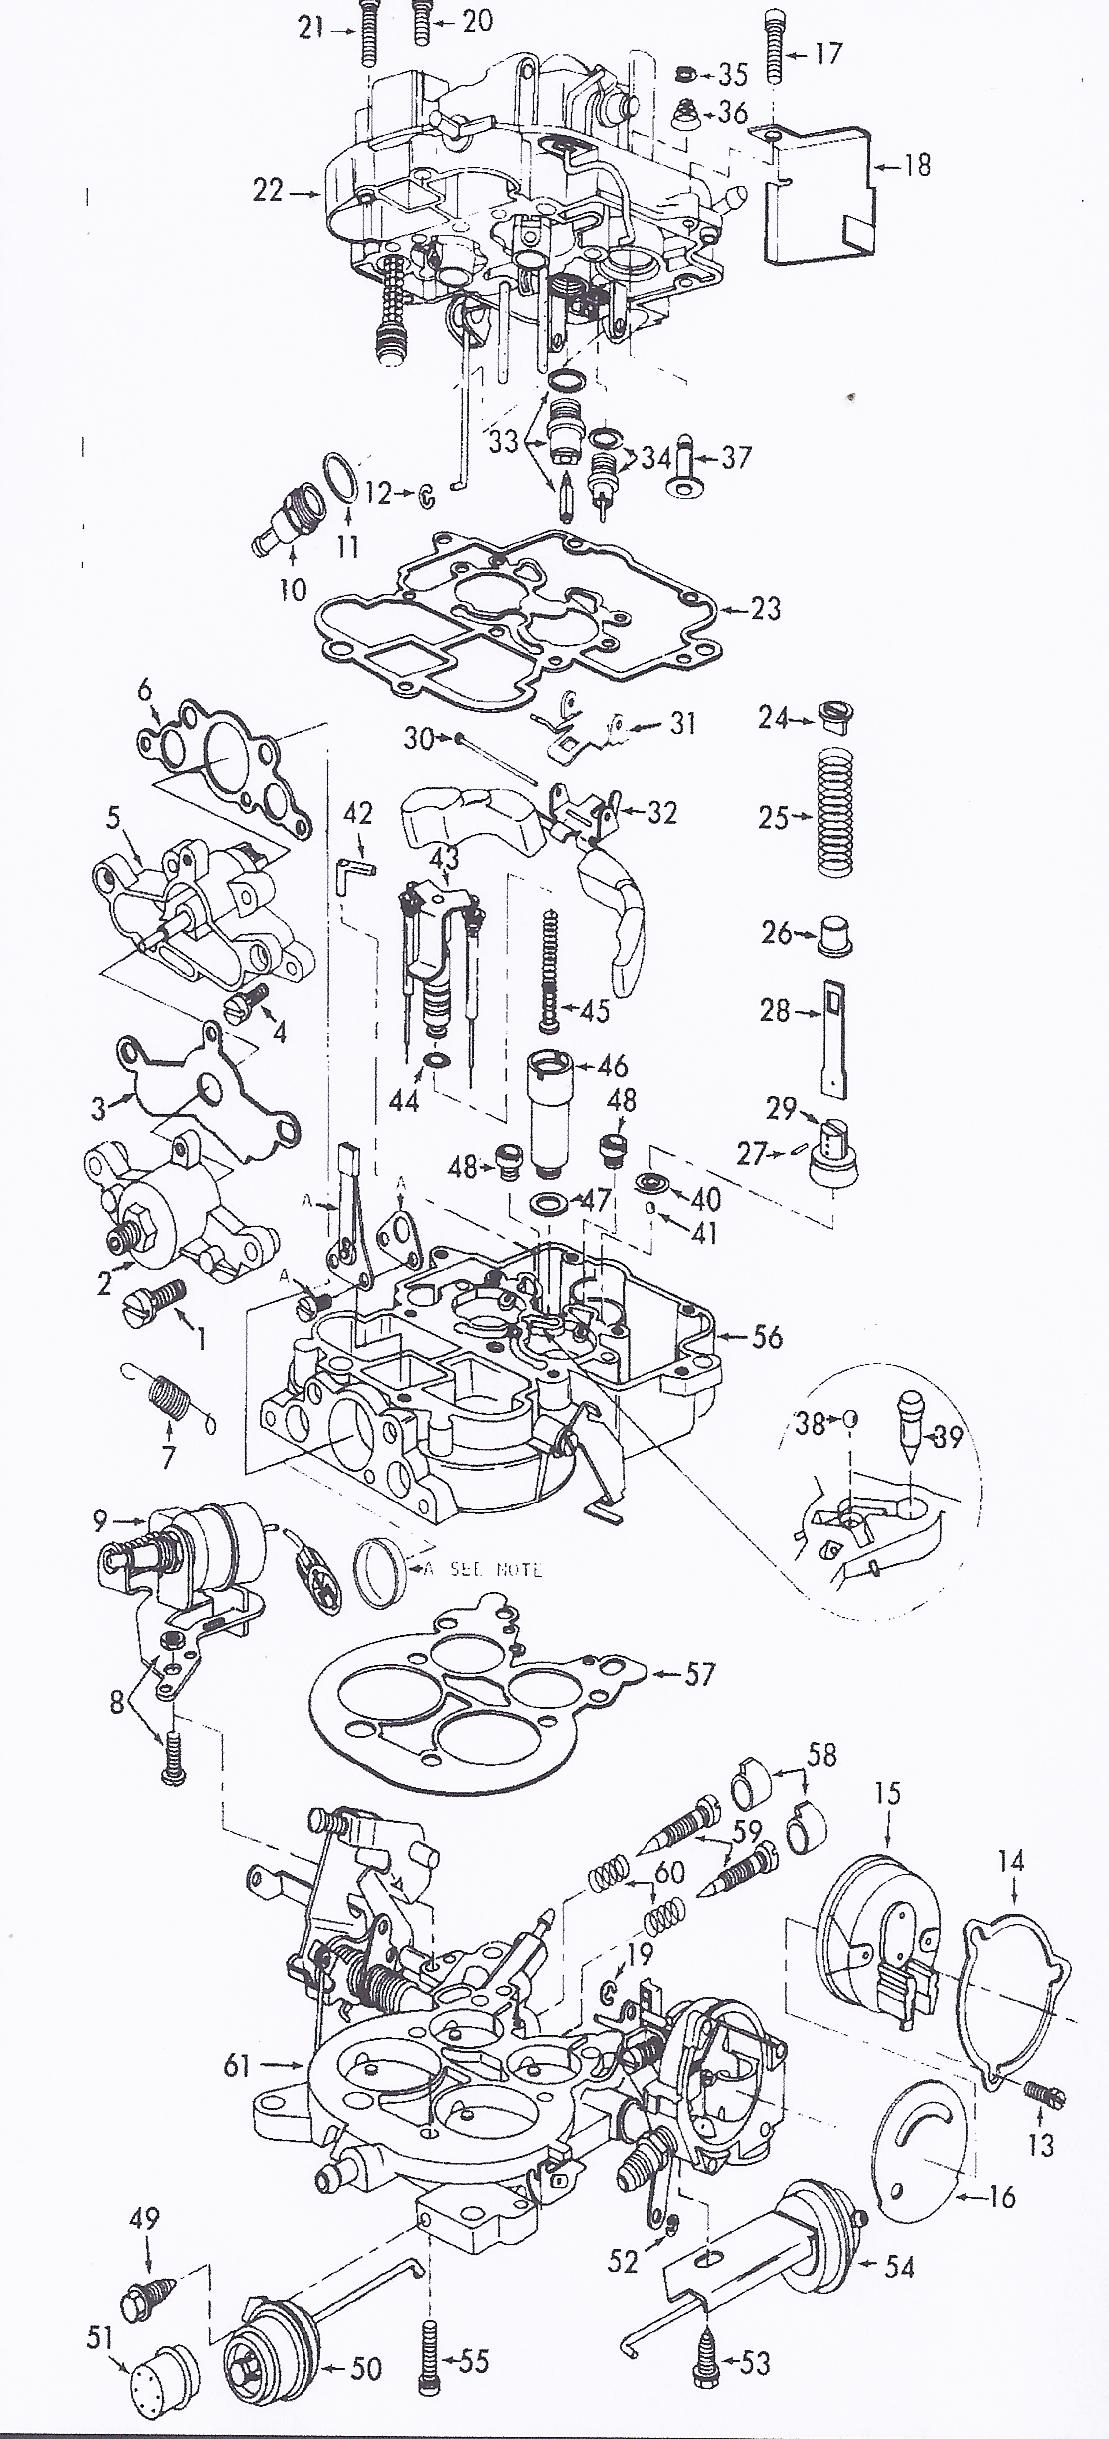 Holley 1920 Exploded Diagrams | Wiring Diagram